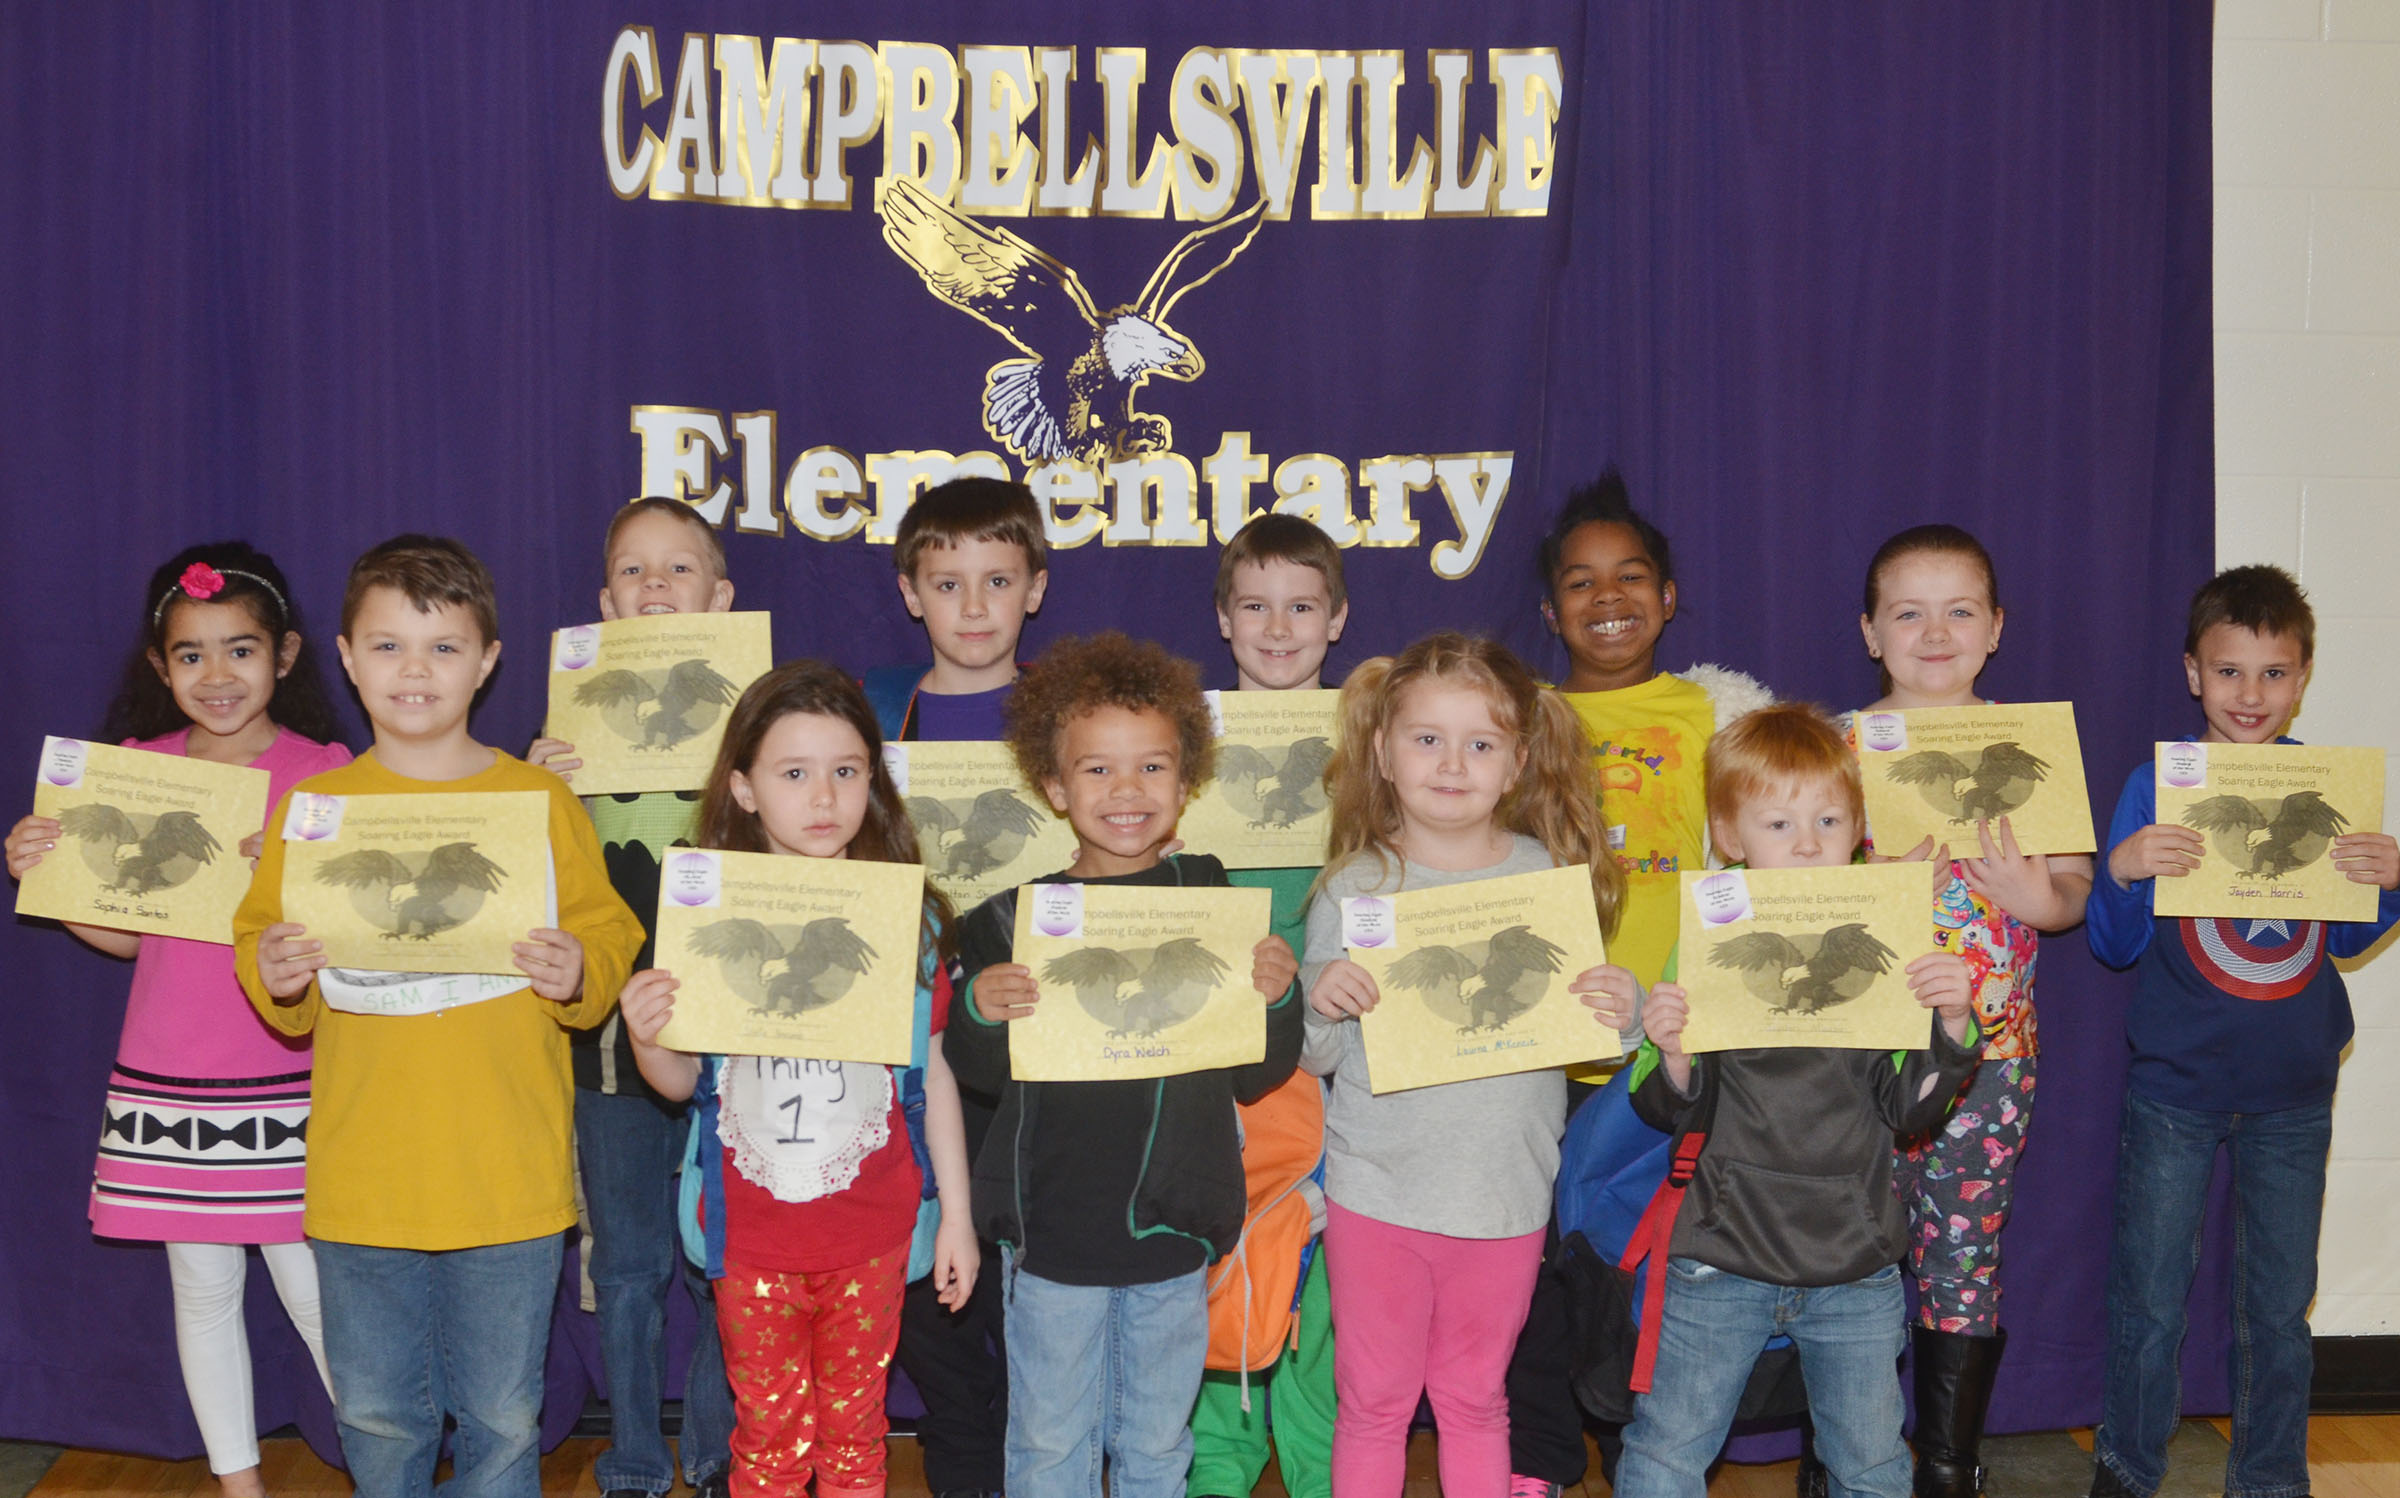 From left, front, are first-graders Jaxson Hunt and Stella Newcomb and kindergarteners Dyra Welch, Laurna McKenzie and Jayden Maupin. Back, second-graders Sophia Santos, Braxton Agee, Dalton Shively and Stephen Green, third-grader KaMiya Williams, first-grader London Whitlow and third-grader Jayden Harris. Absent from the photo are kindergartener Timothy Stacy, first-grader Alexis Mann and third-grader Mary James.